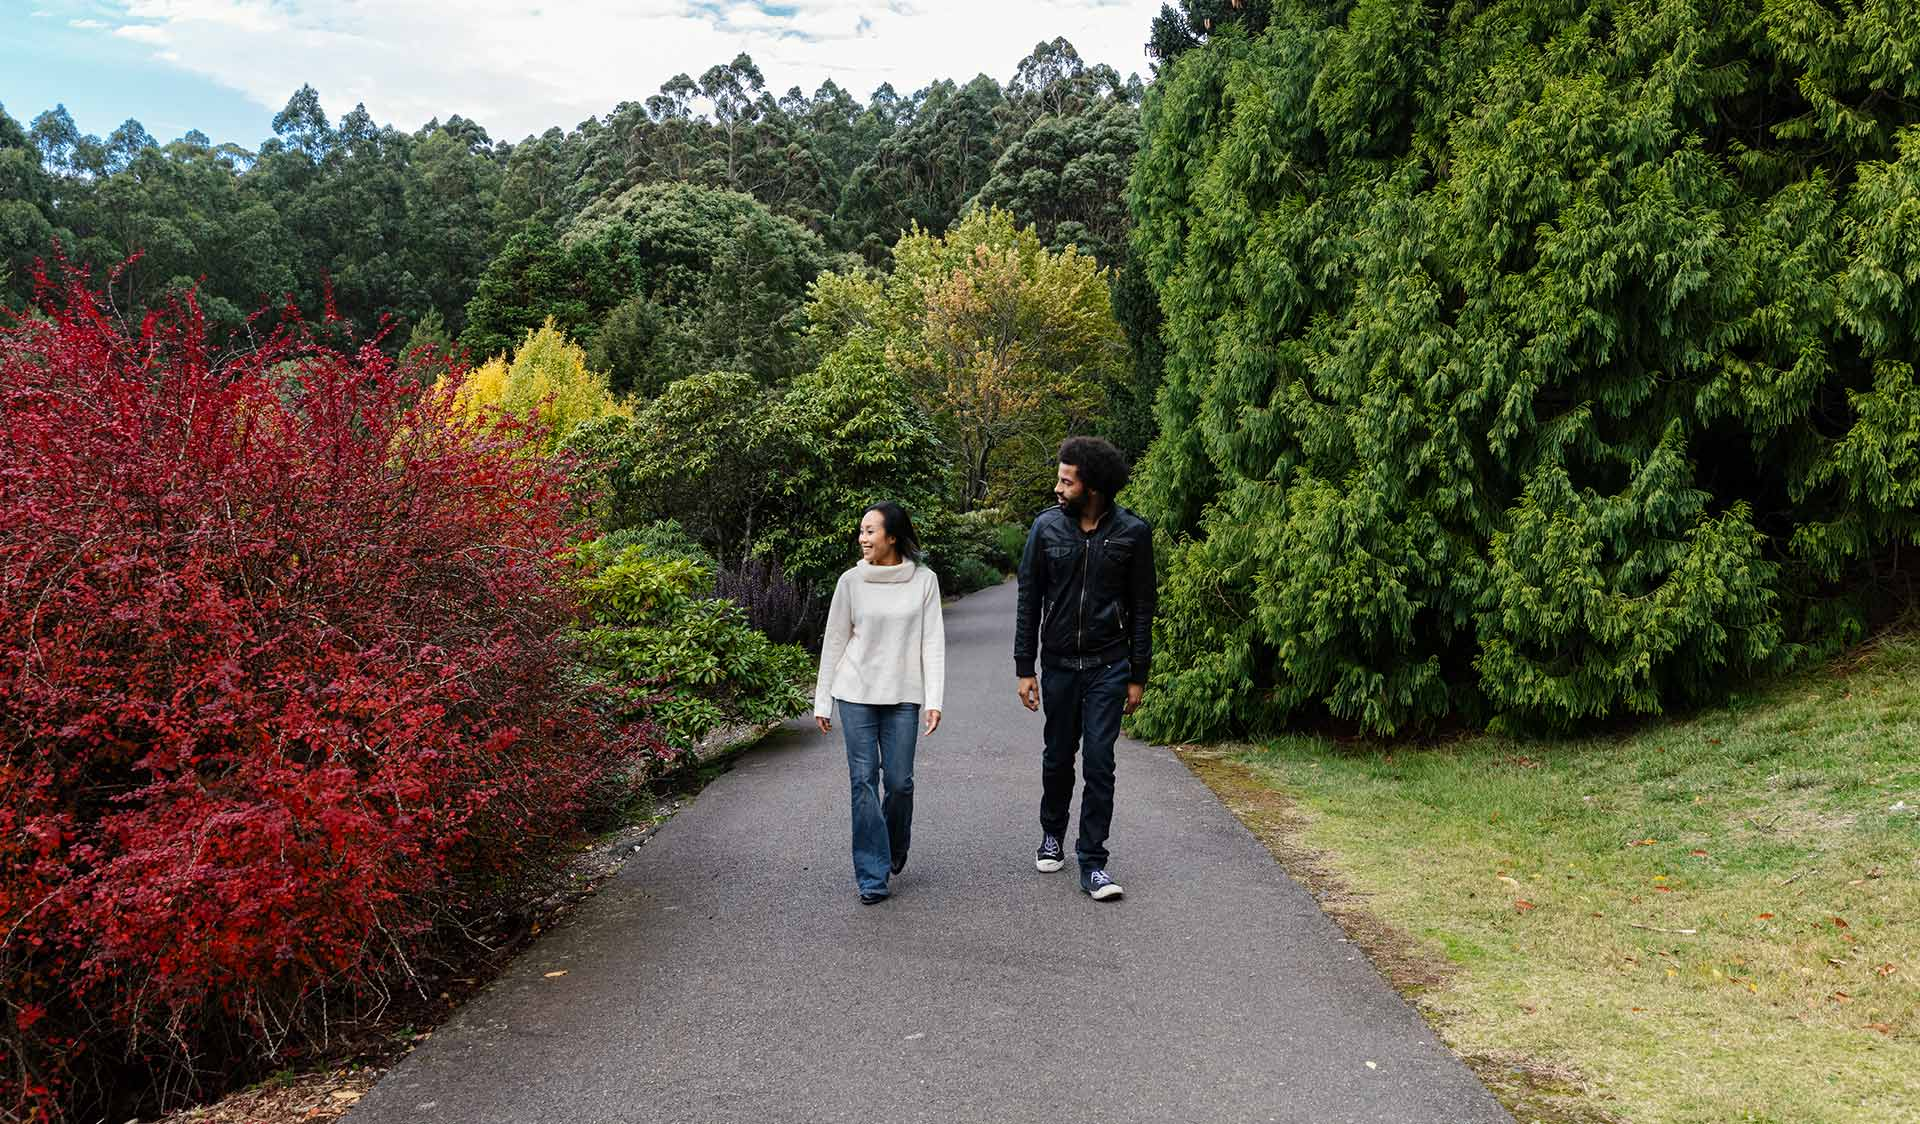 A man with an afro wearing a leather jacket and woman wearing a cream knitted jumper walk past a tree with splendid autumn leaves.